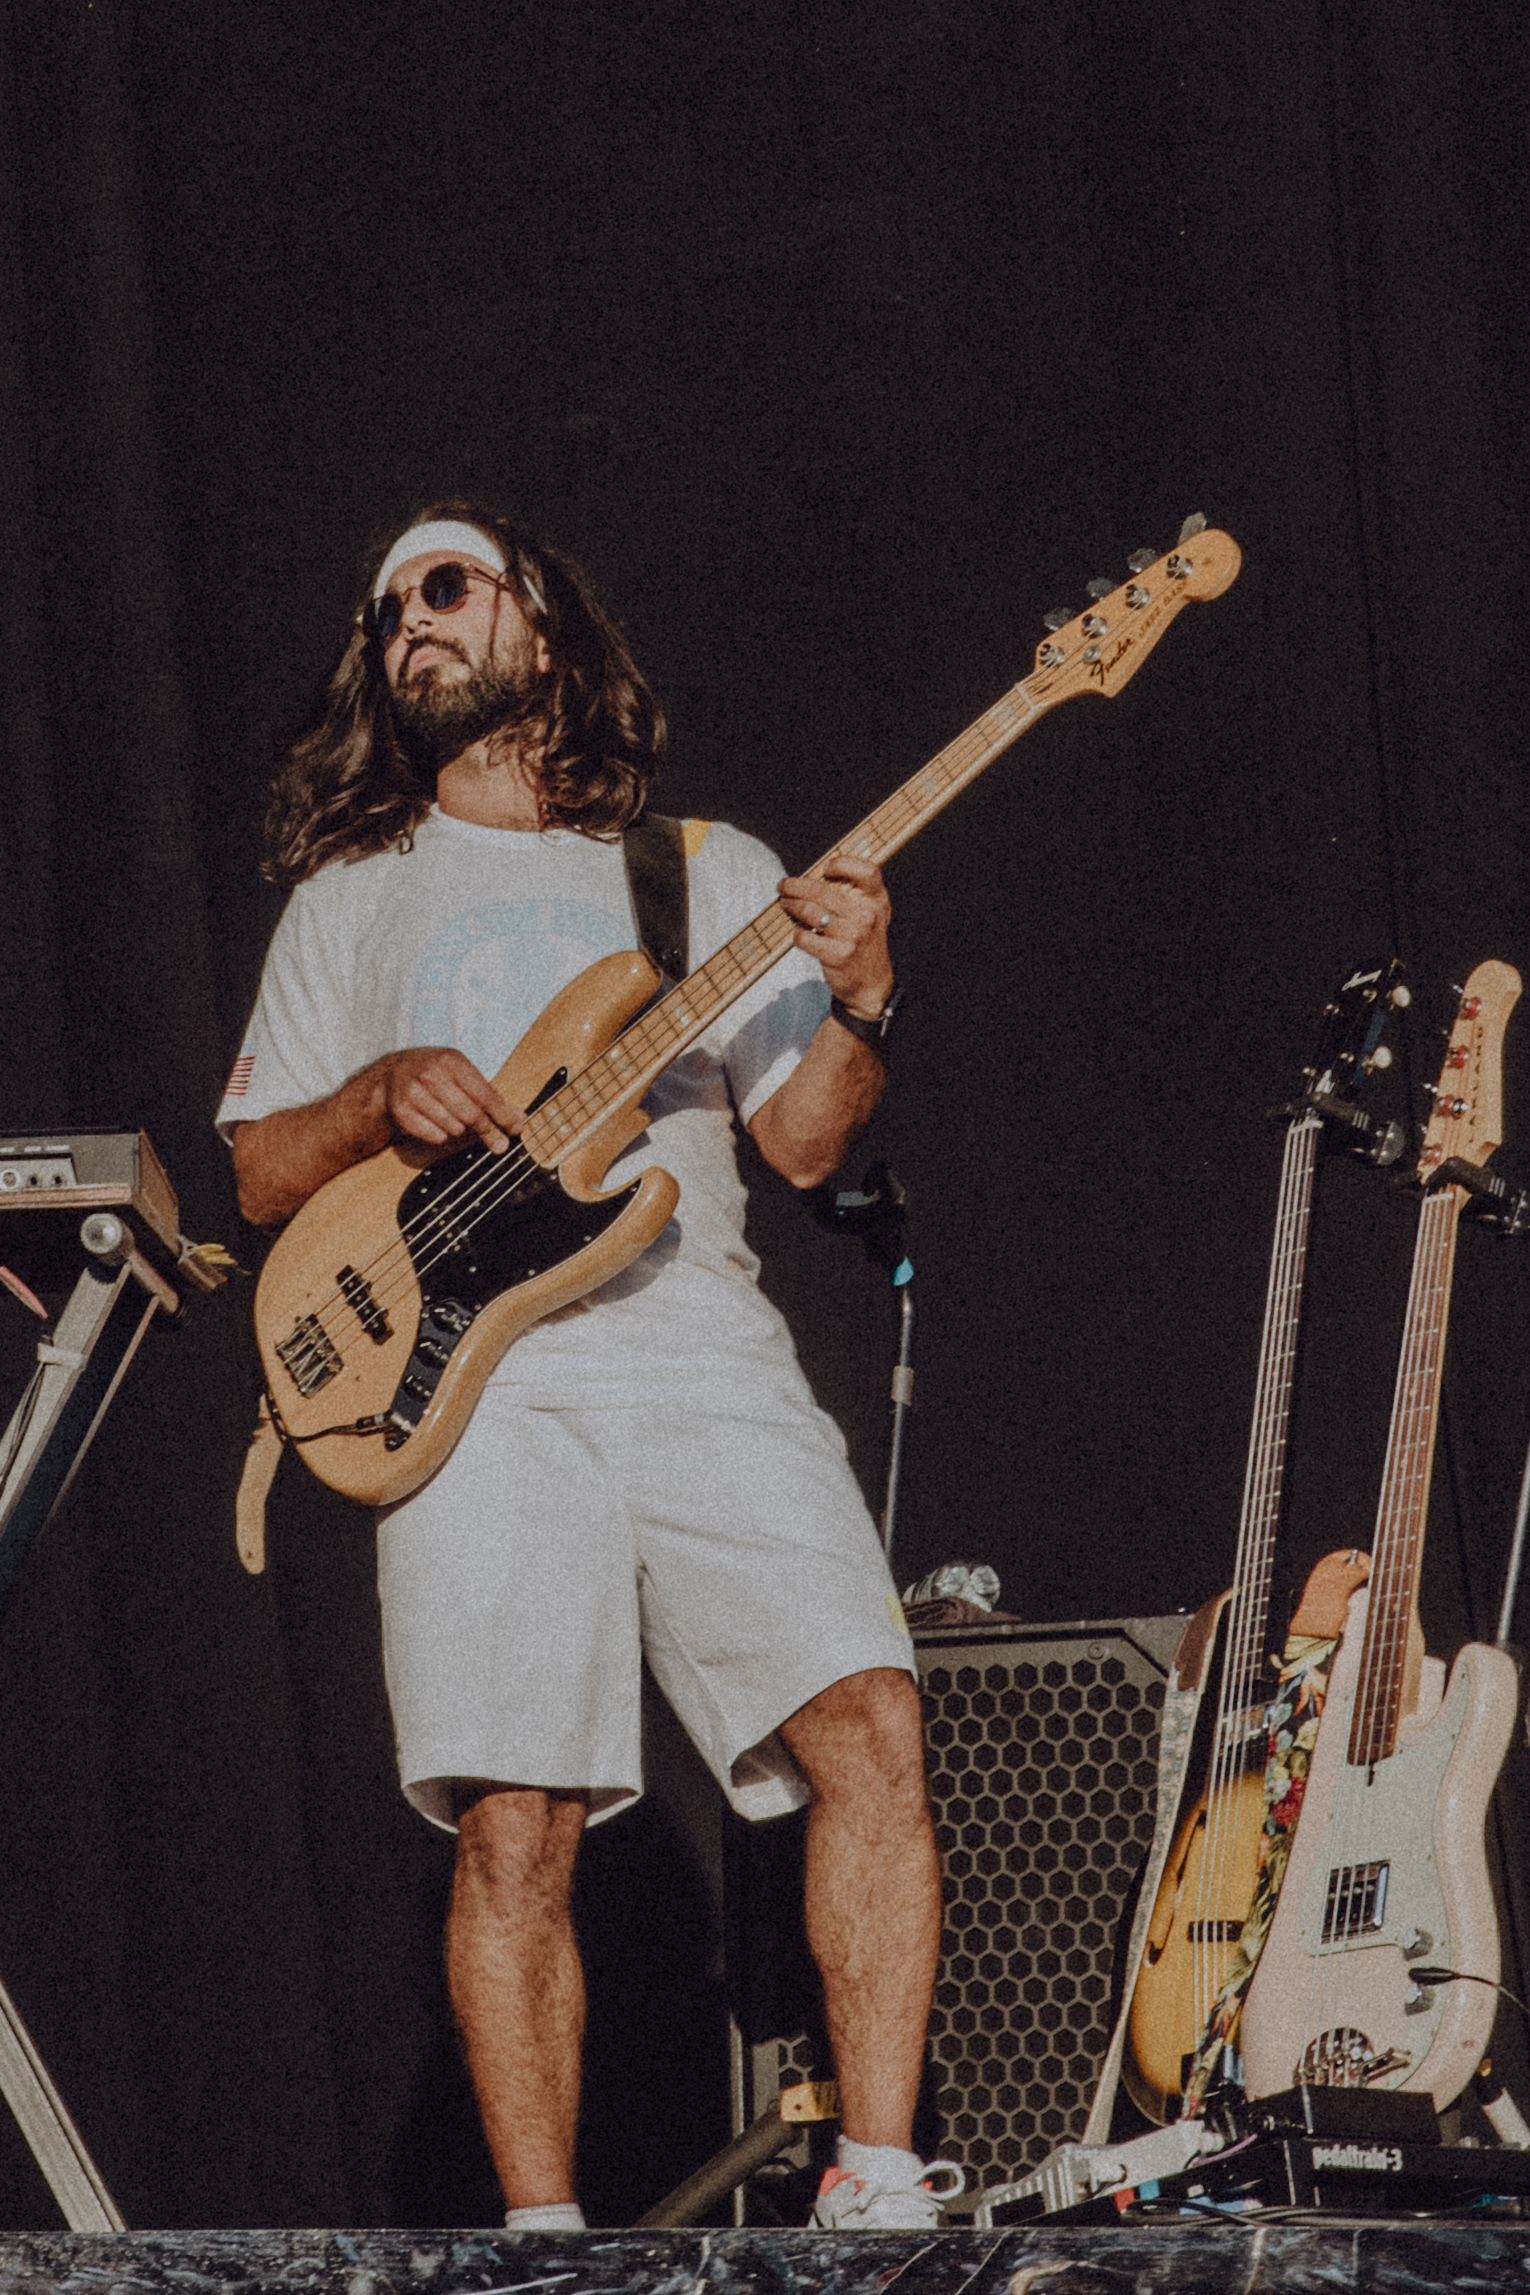 WILLIAMS_YOUNGTHEGIANT-6.jpg